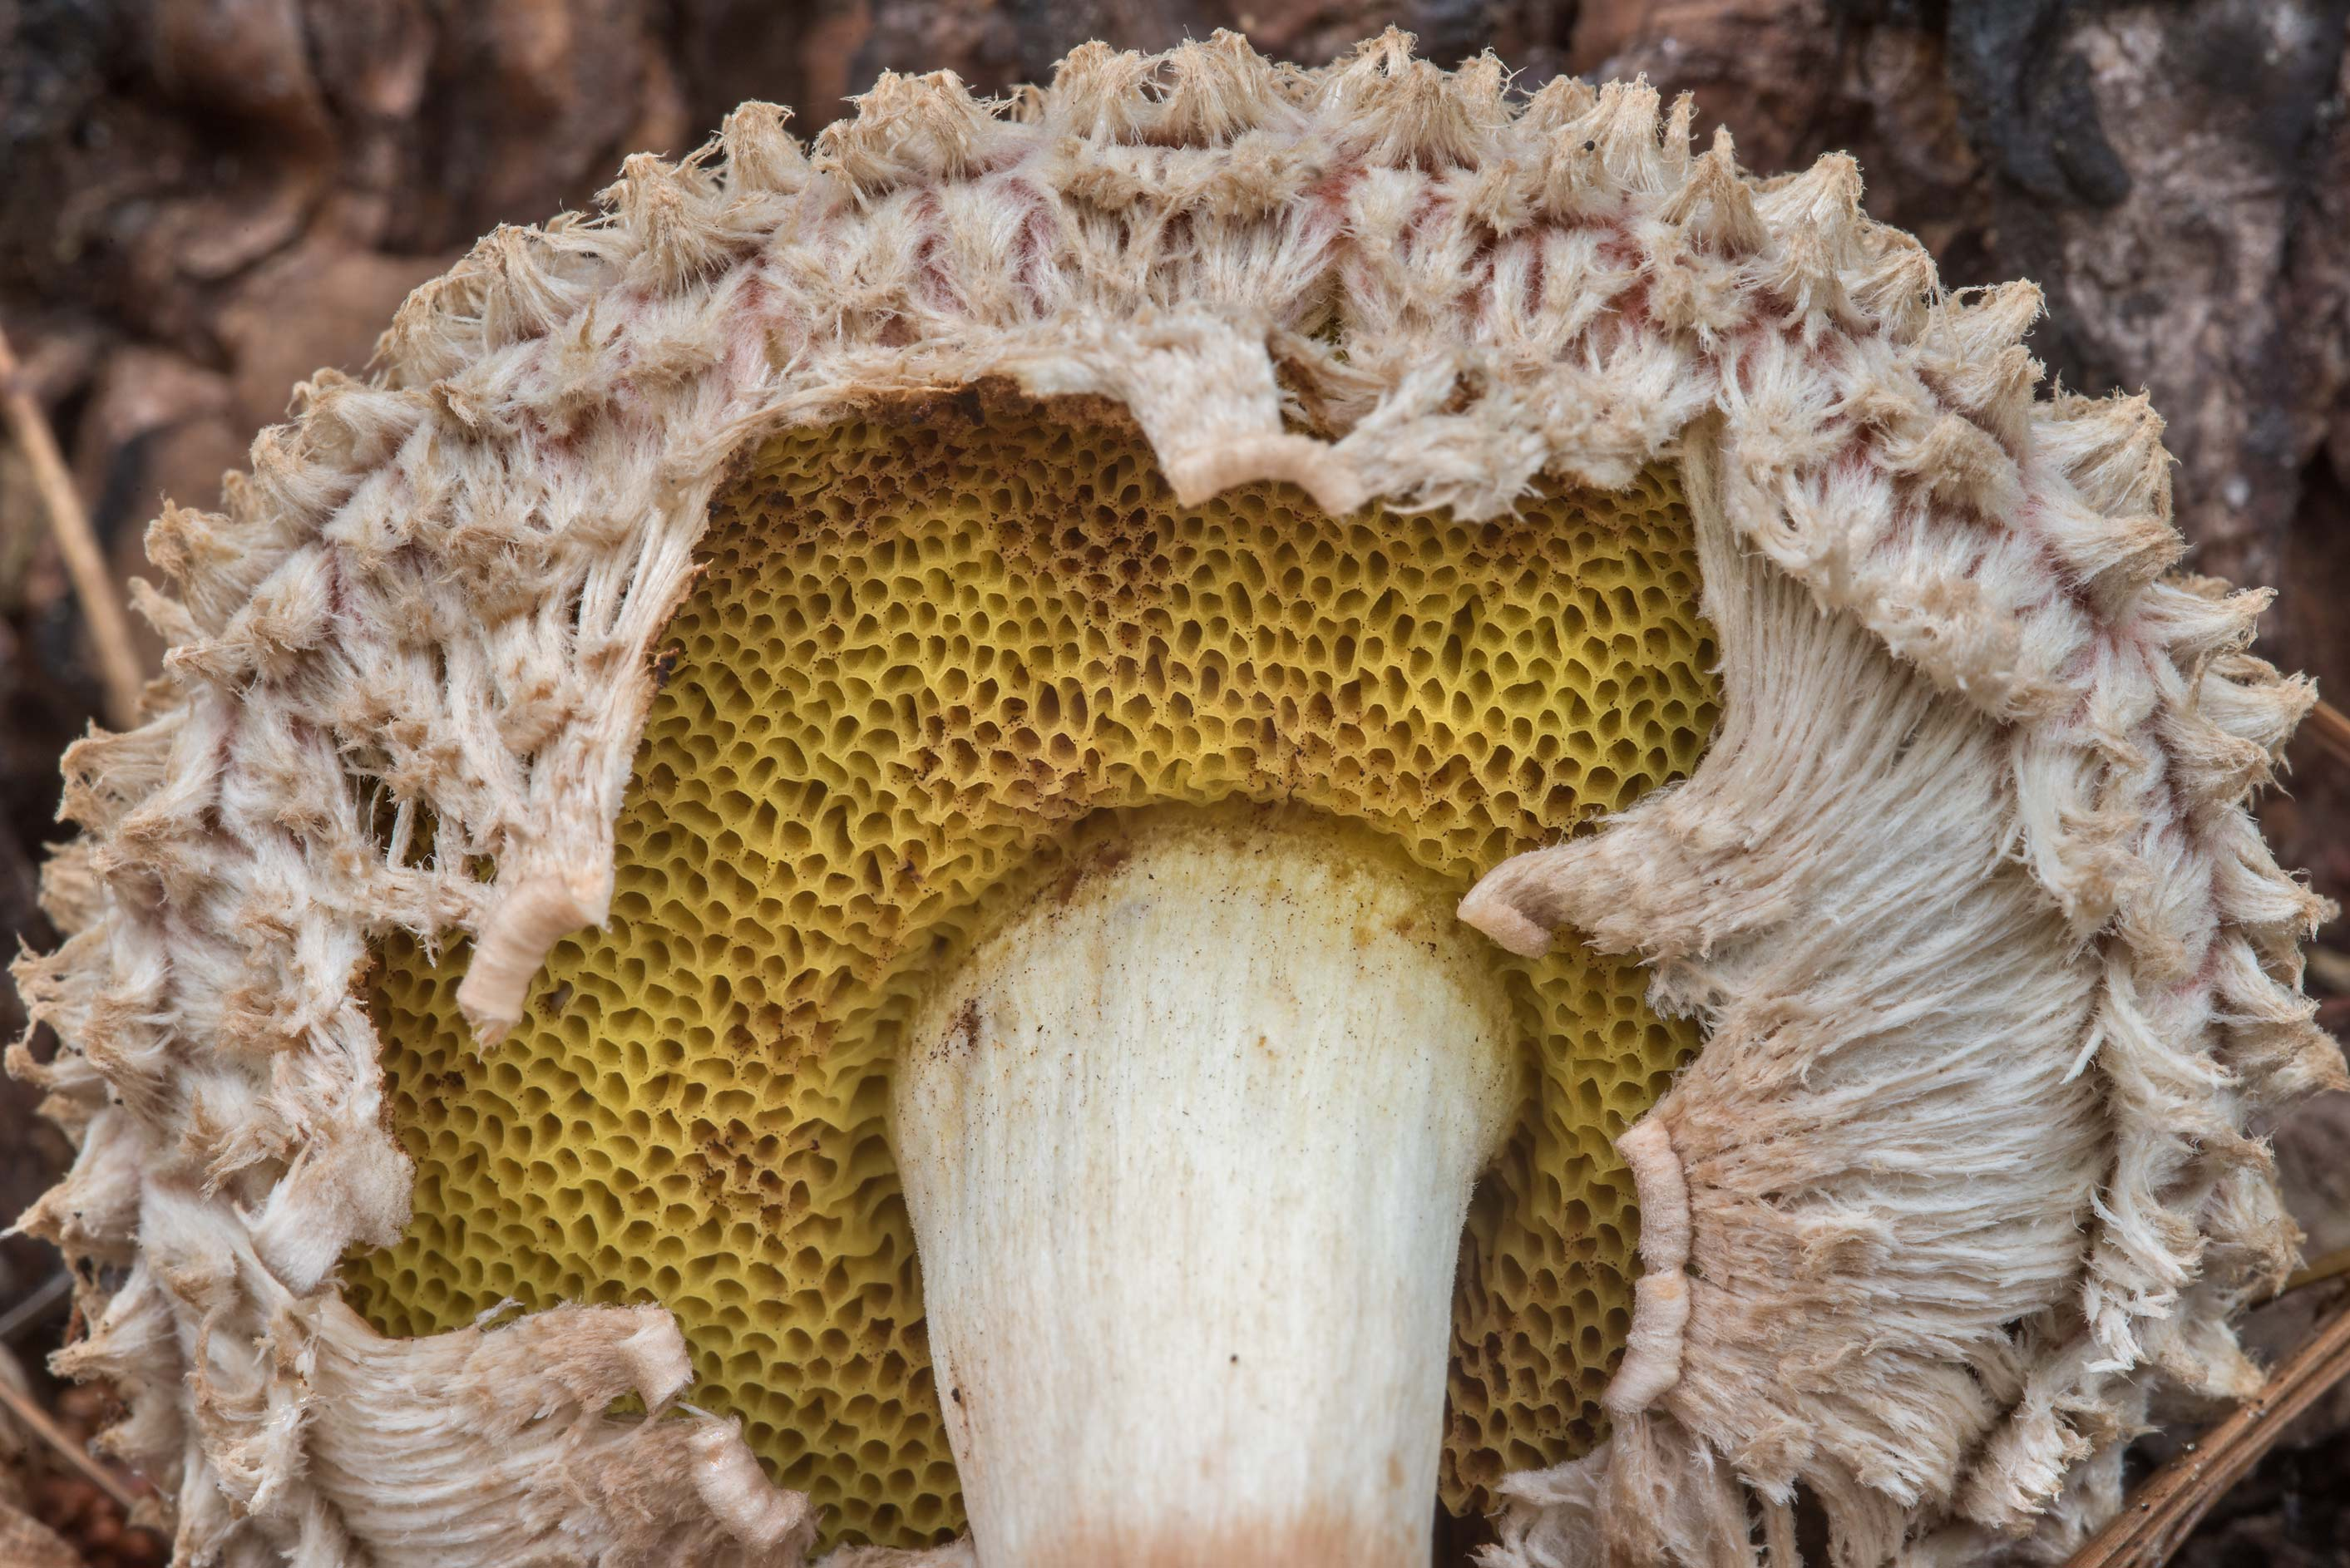 Pores and remains of veil of pineapple bolete...National Forest near Huntsville, Texas